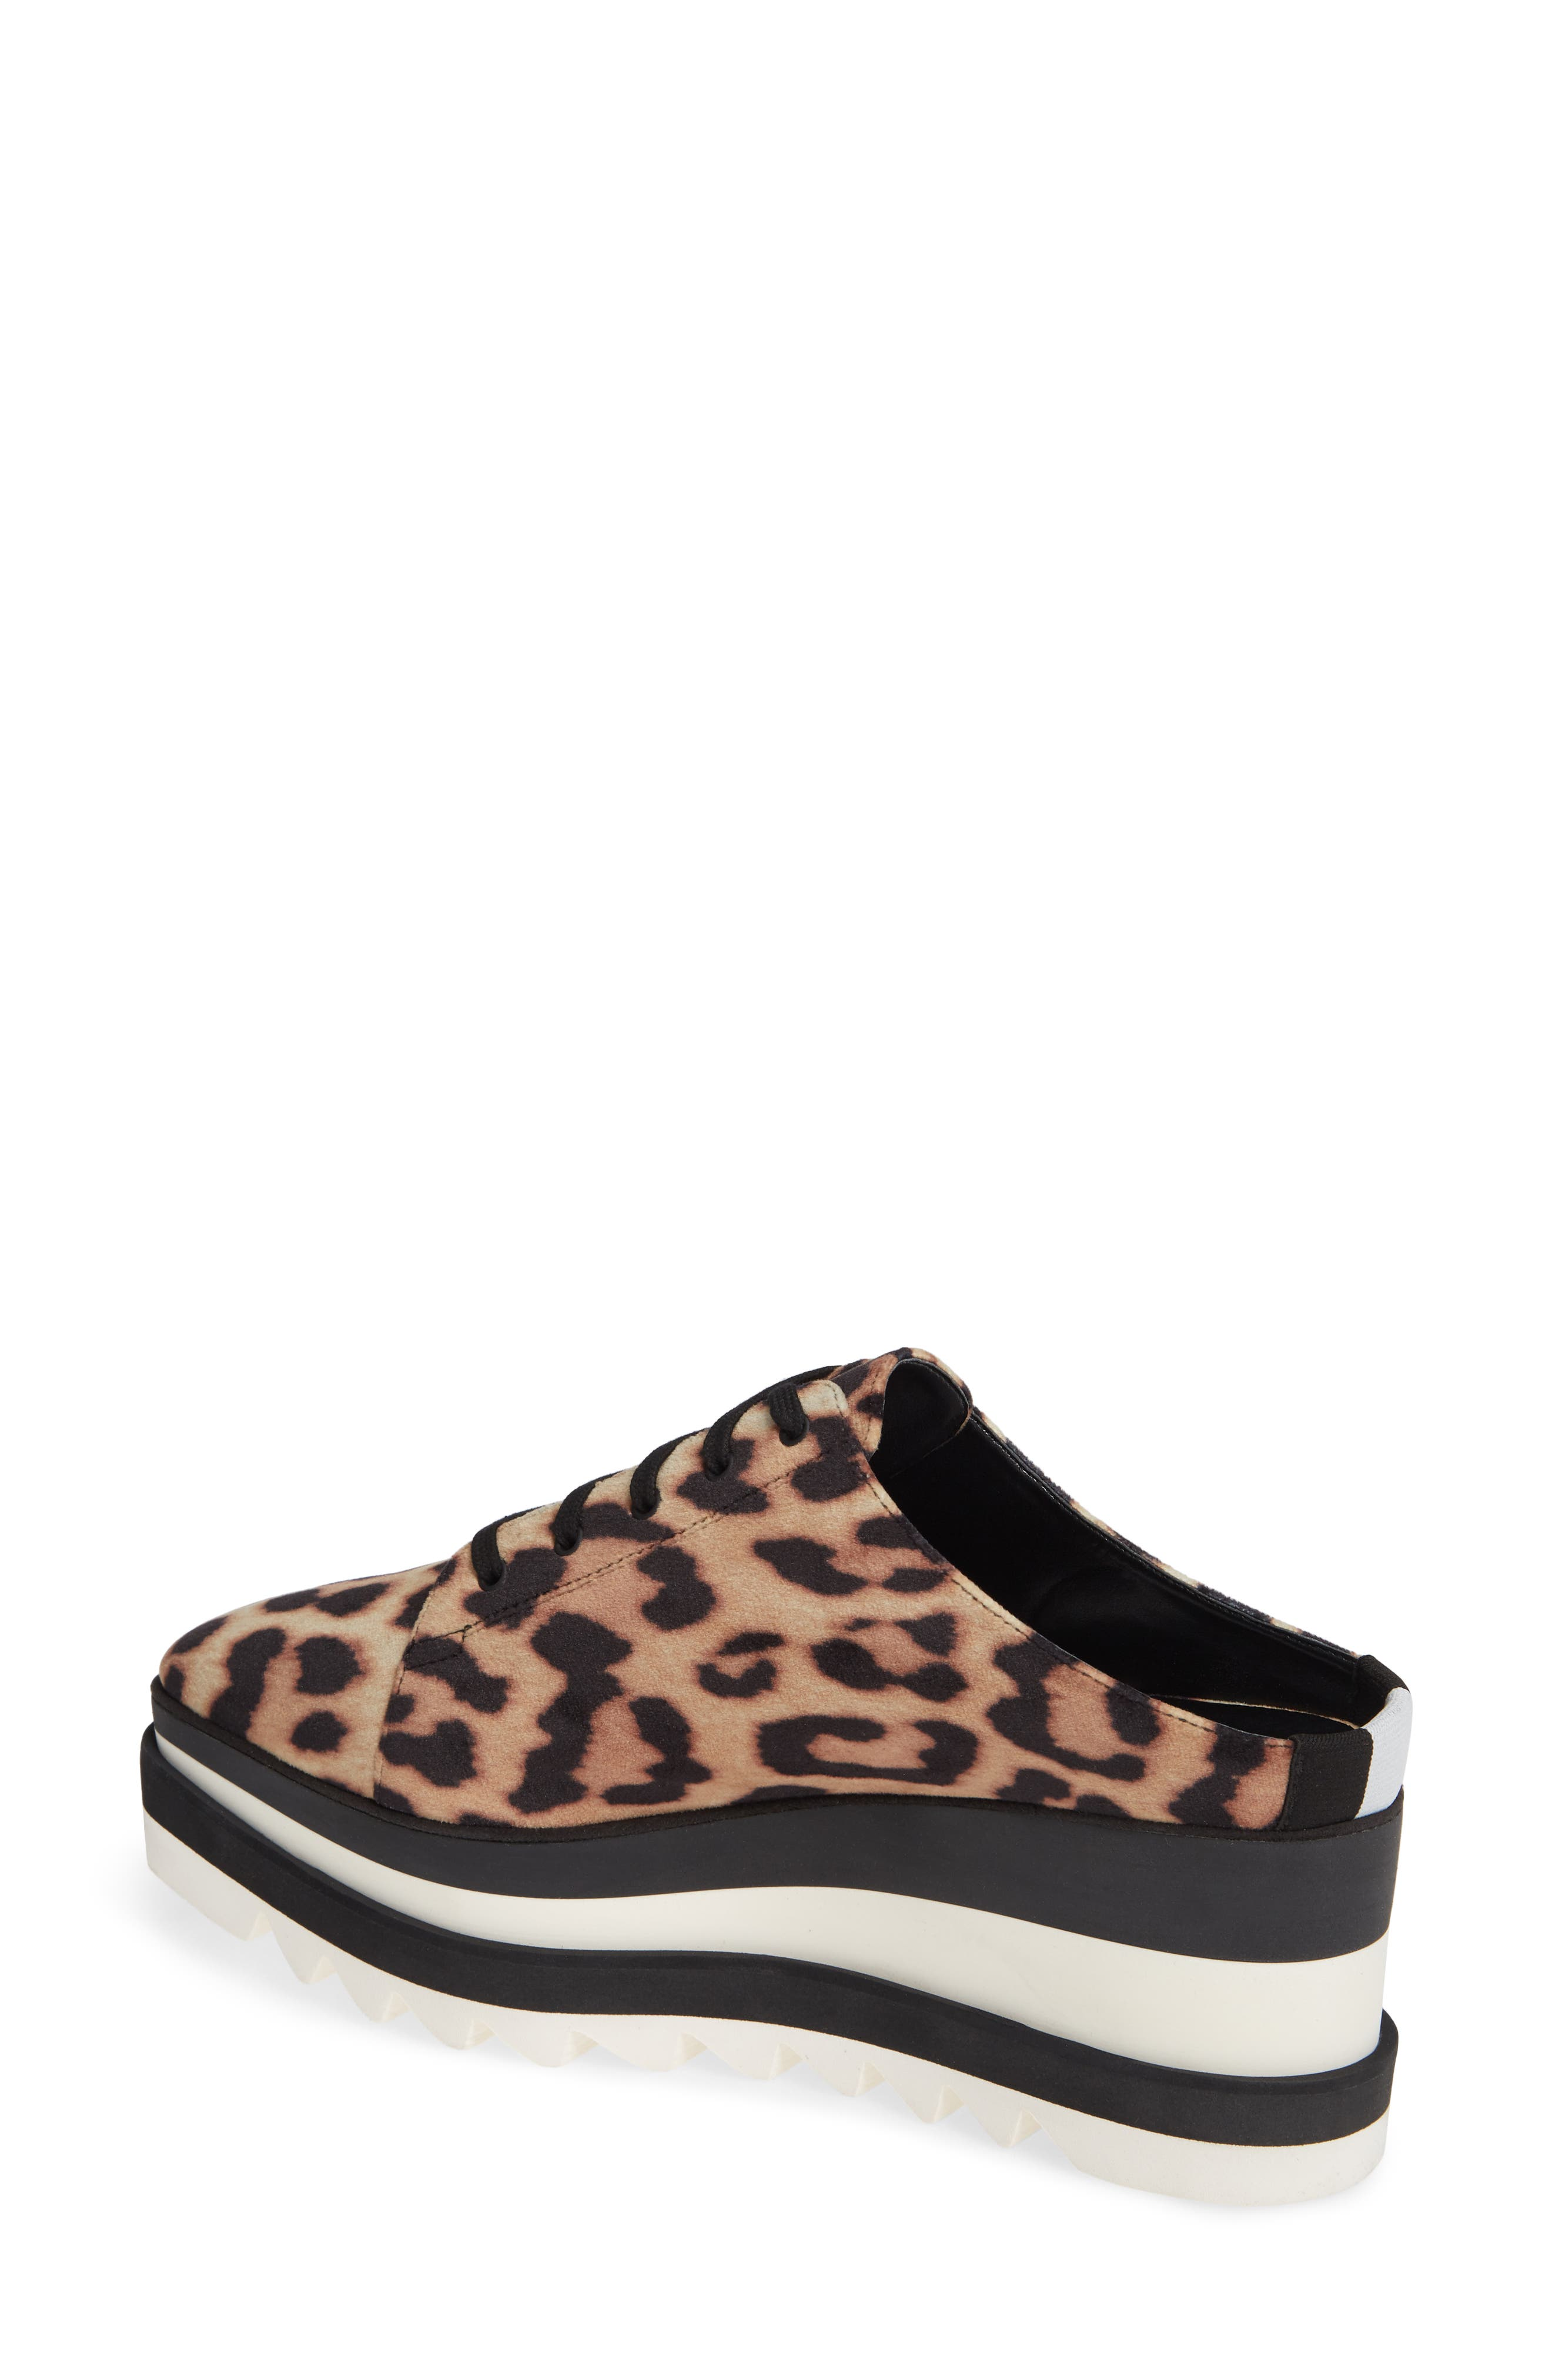 Sneak-Elyse Platform Mule,                             Alternate thumbnail 2, color,                             LEOPARD PRINT